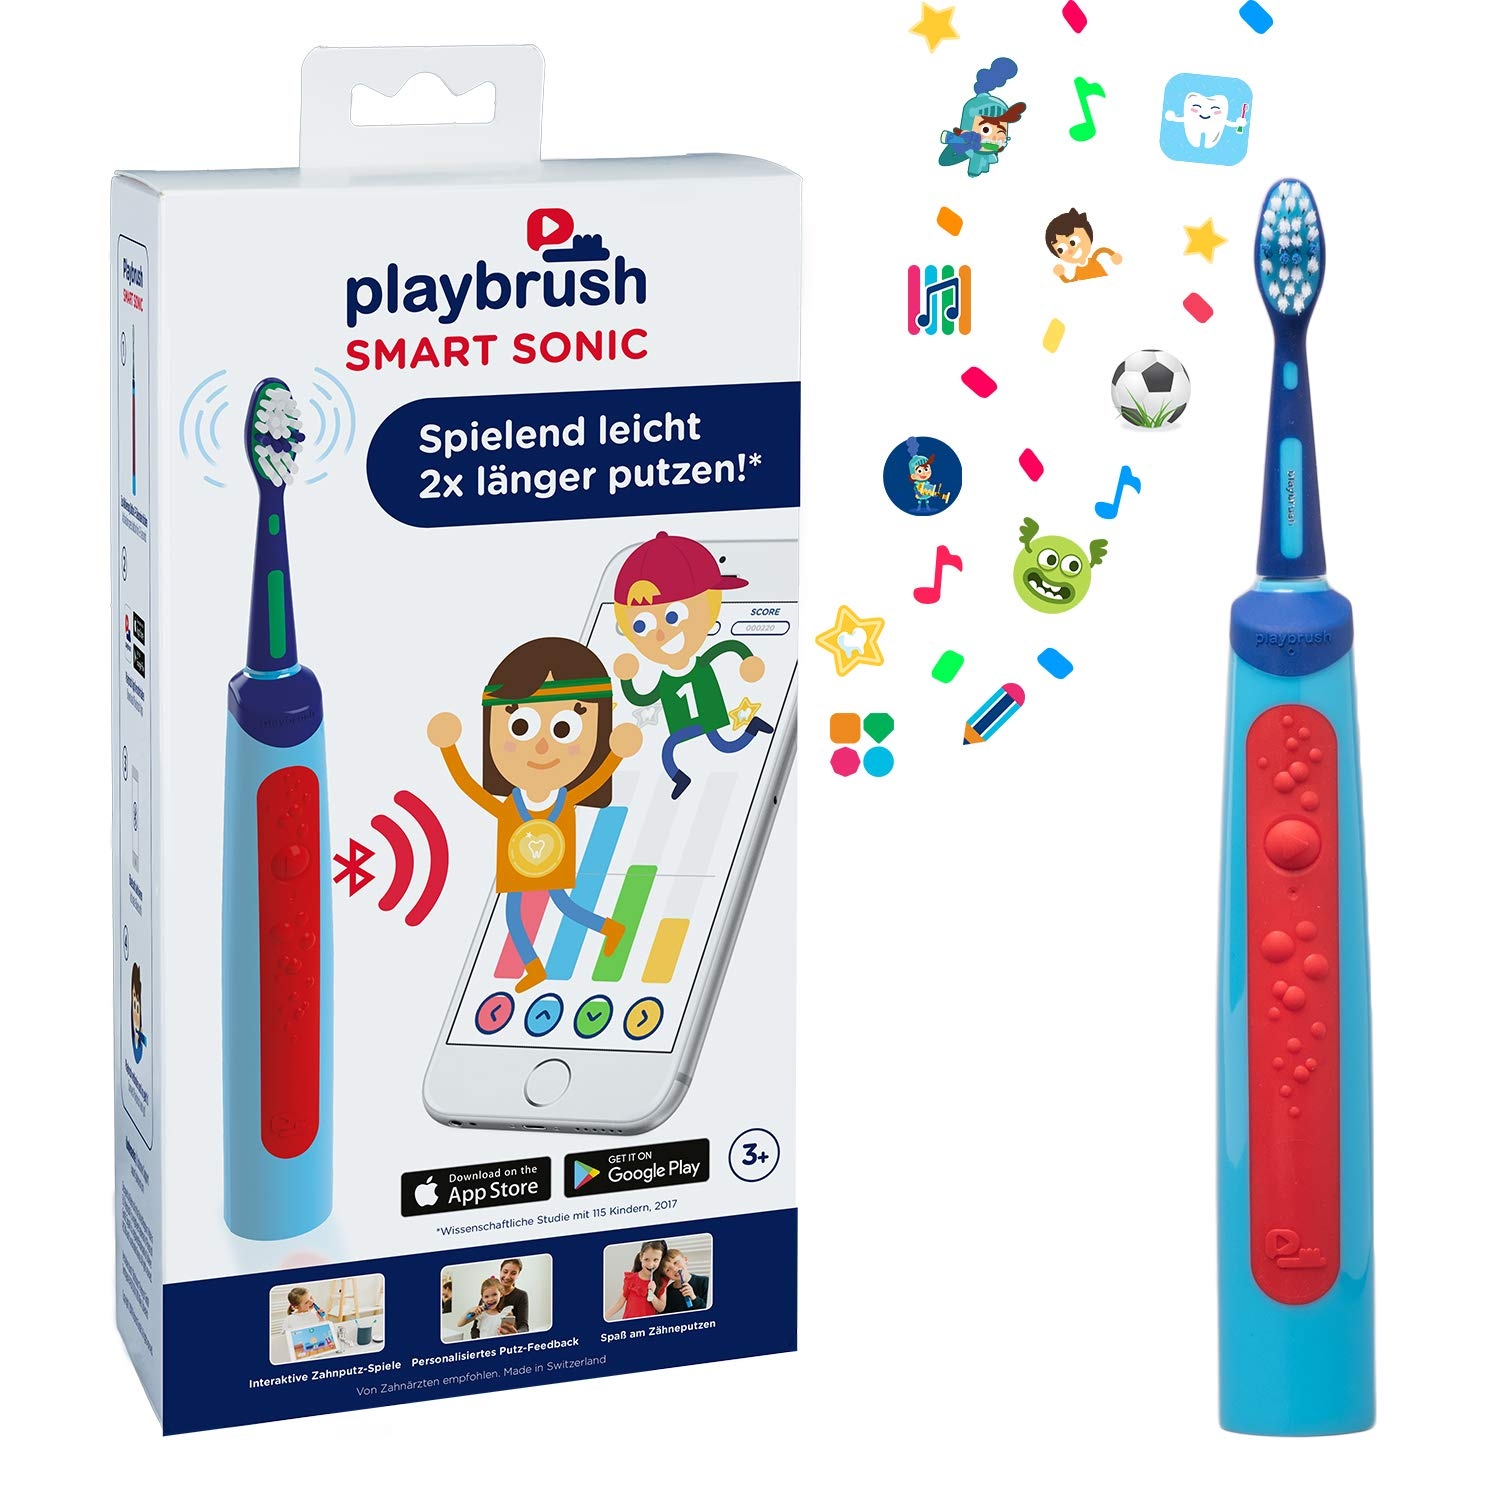 Playbrush Smart Sonic Zahnbürste amazon